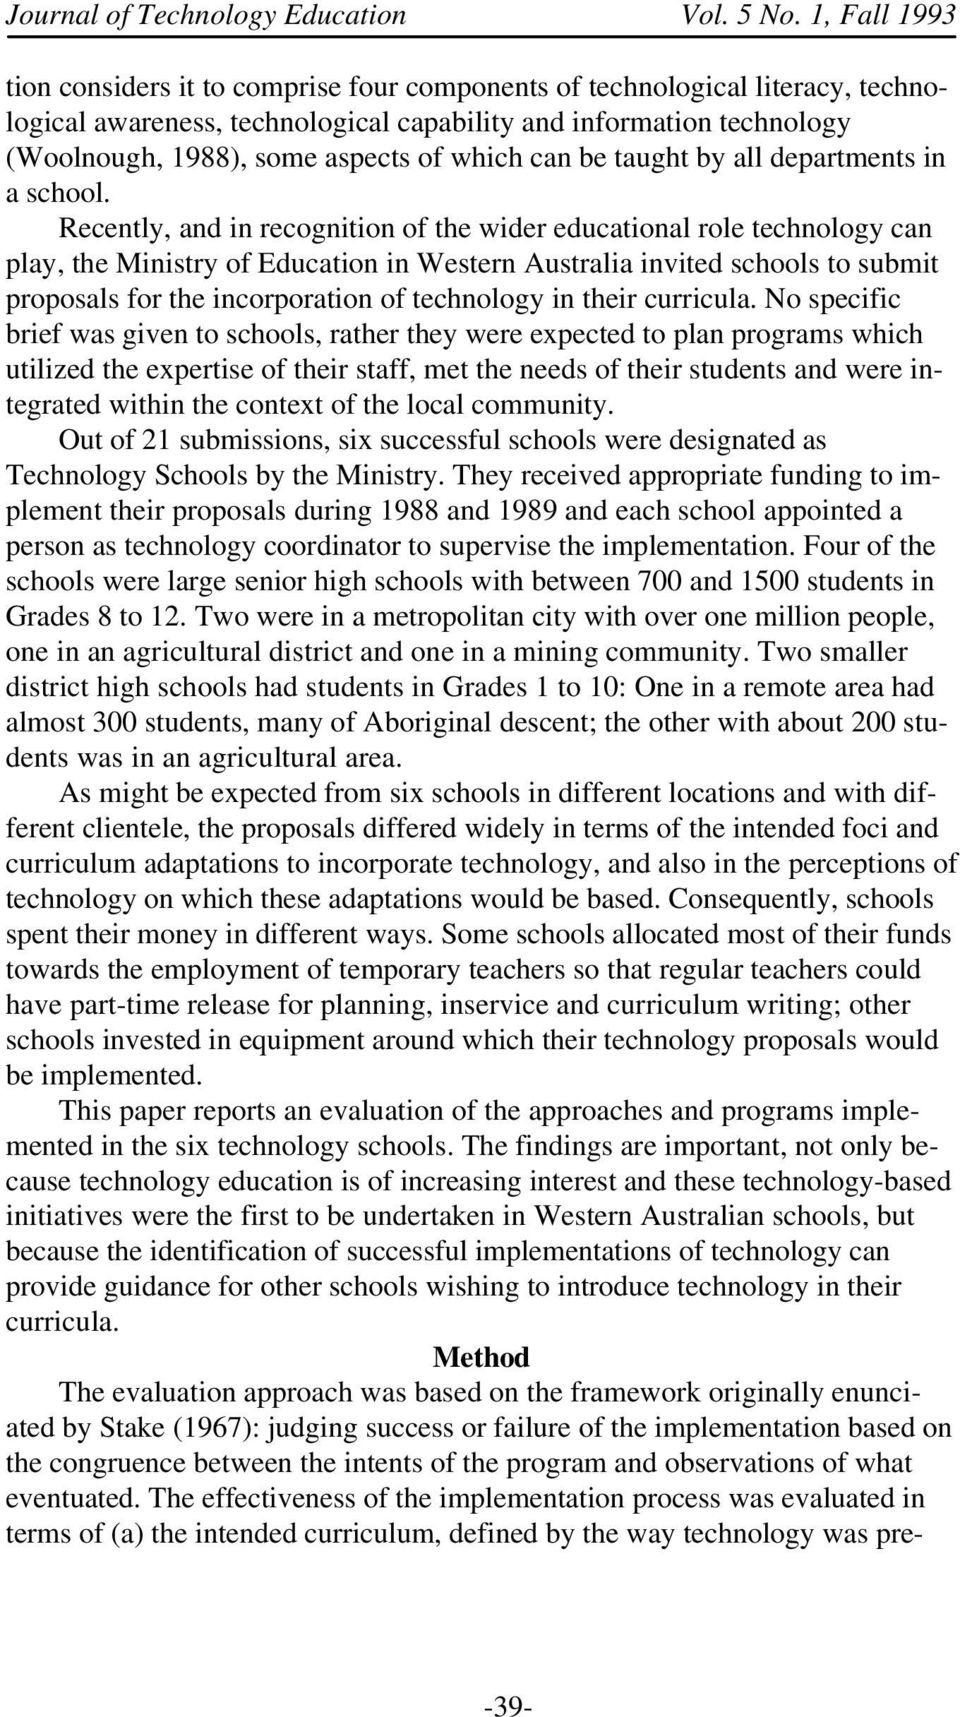 Recently, and in recognition of the wider educational role technology can play, the Ministry of Education in Western Australia invited schools to submit proposals for the incorporation of technology